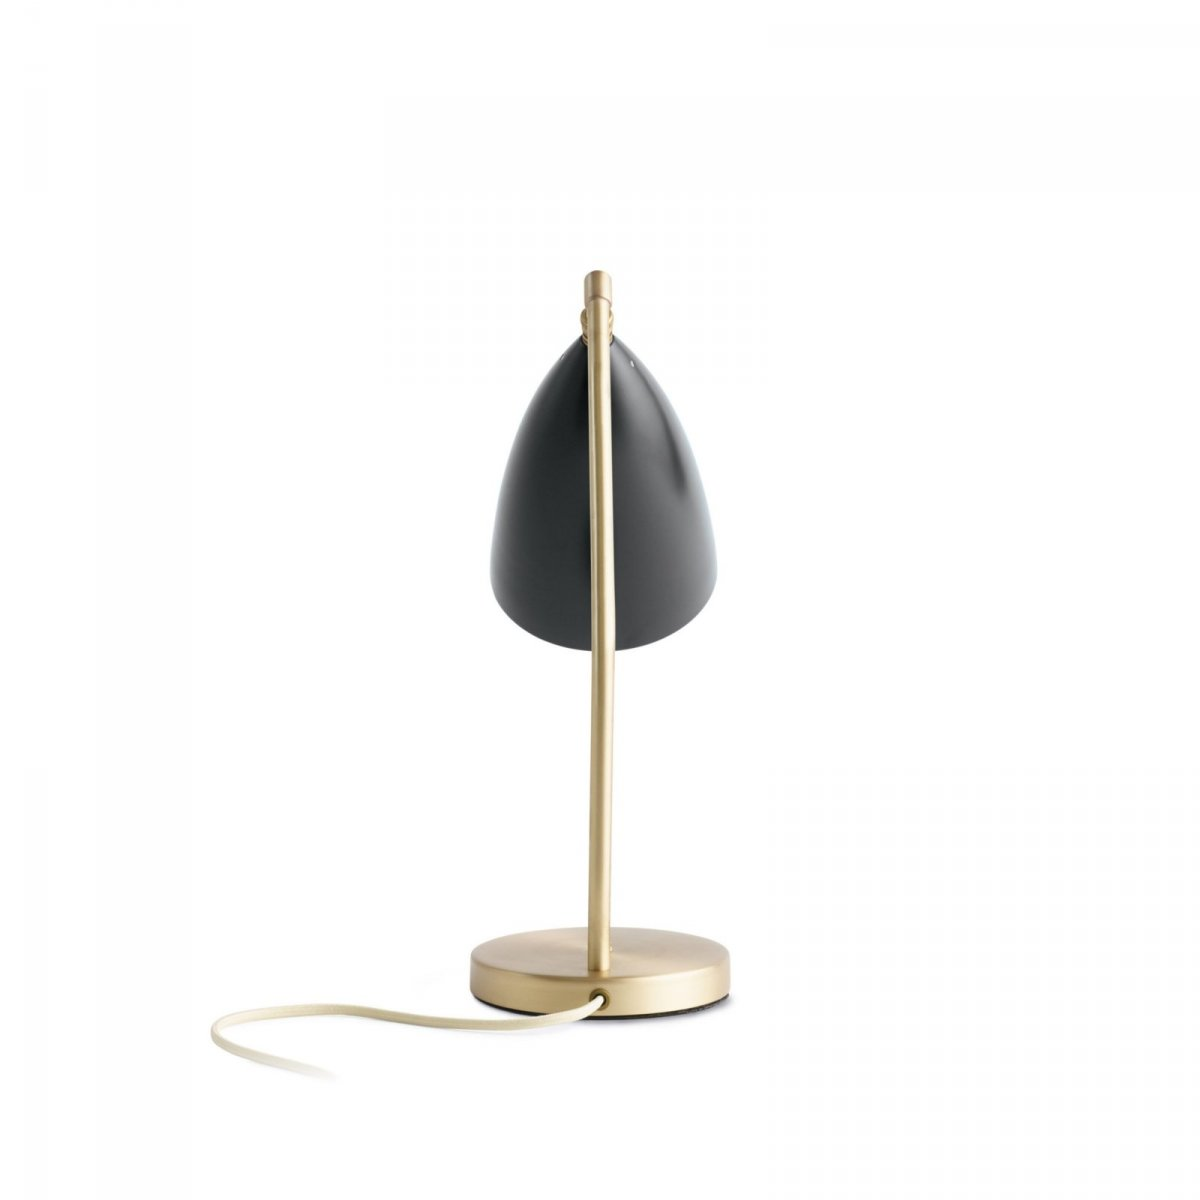 Grossman Gräshoppa Task Table Lamp, jet black, back view.